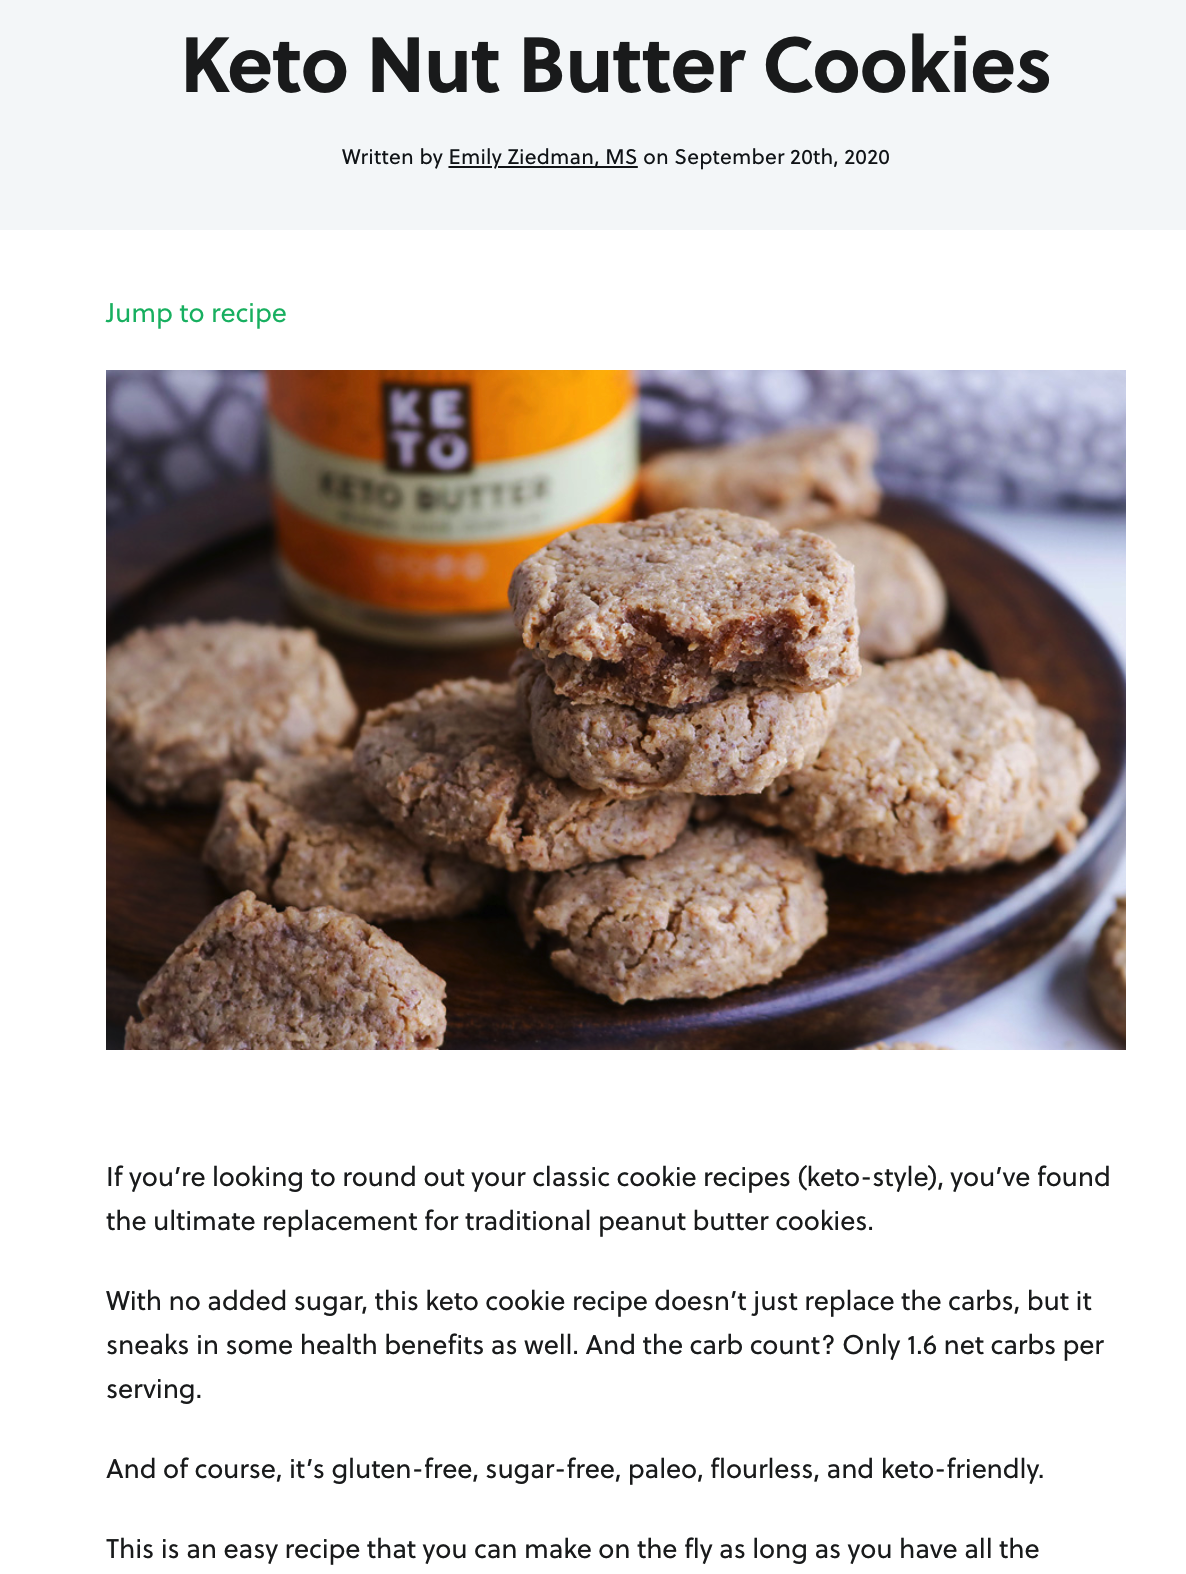 Perfect Keto nut butter cookies recipe